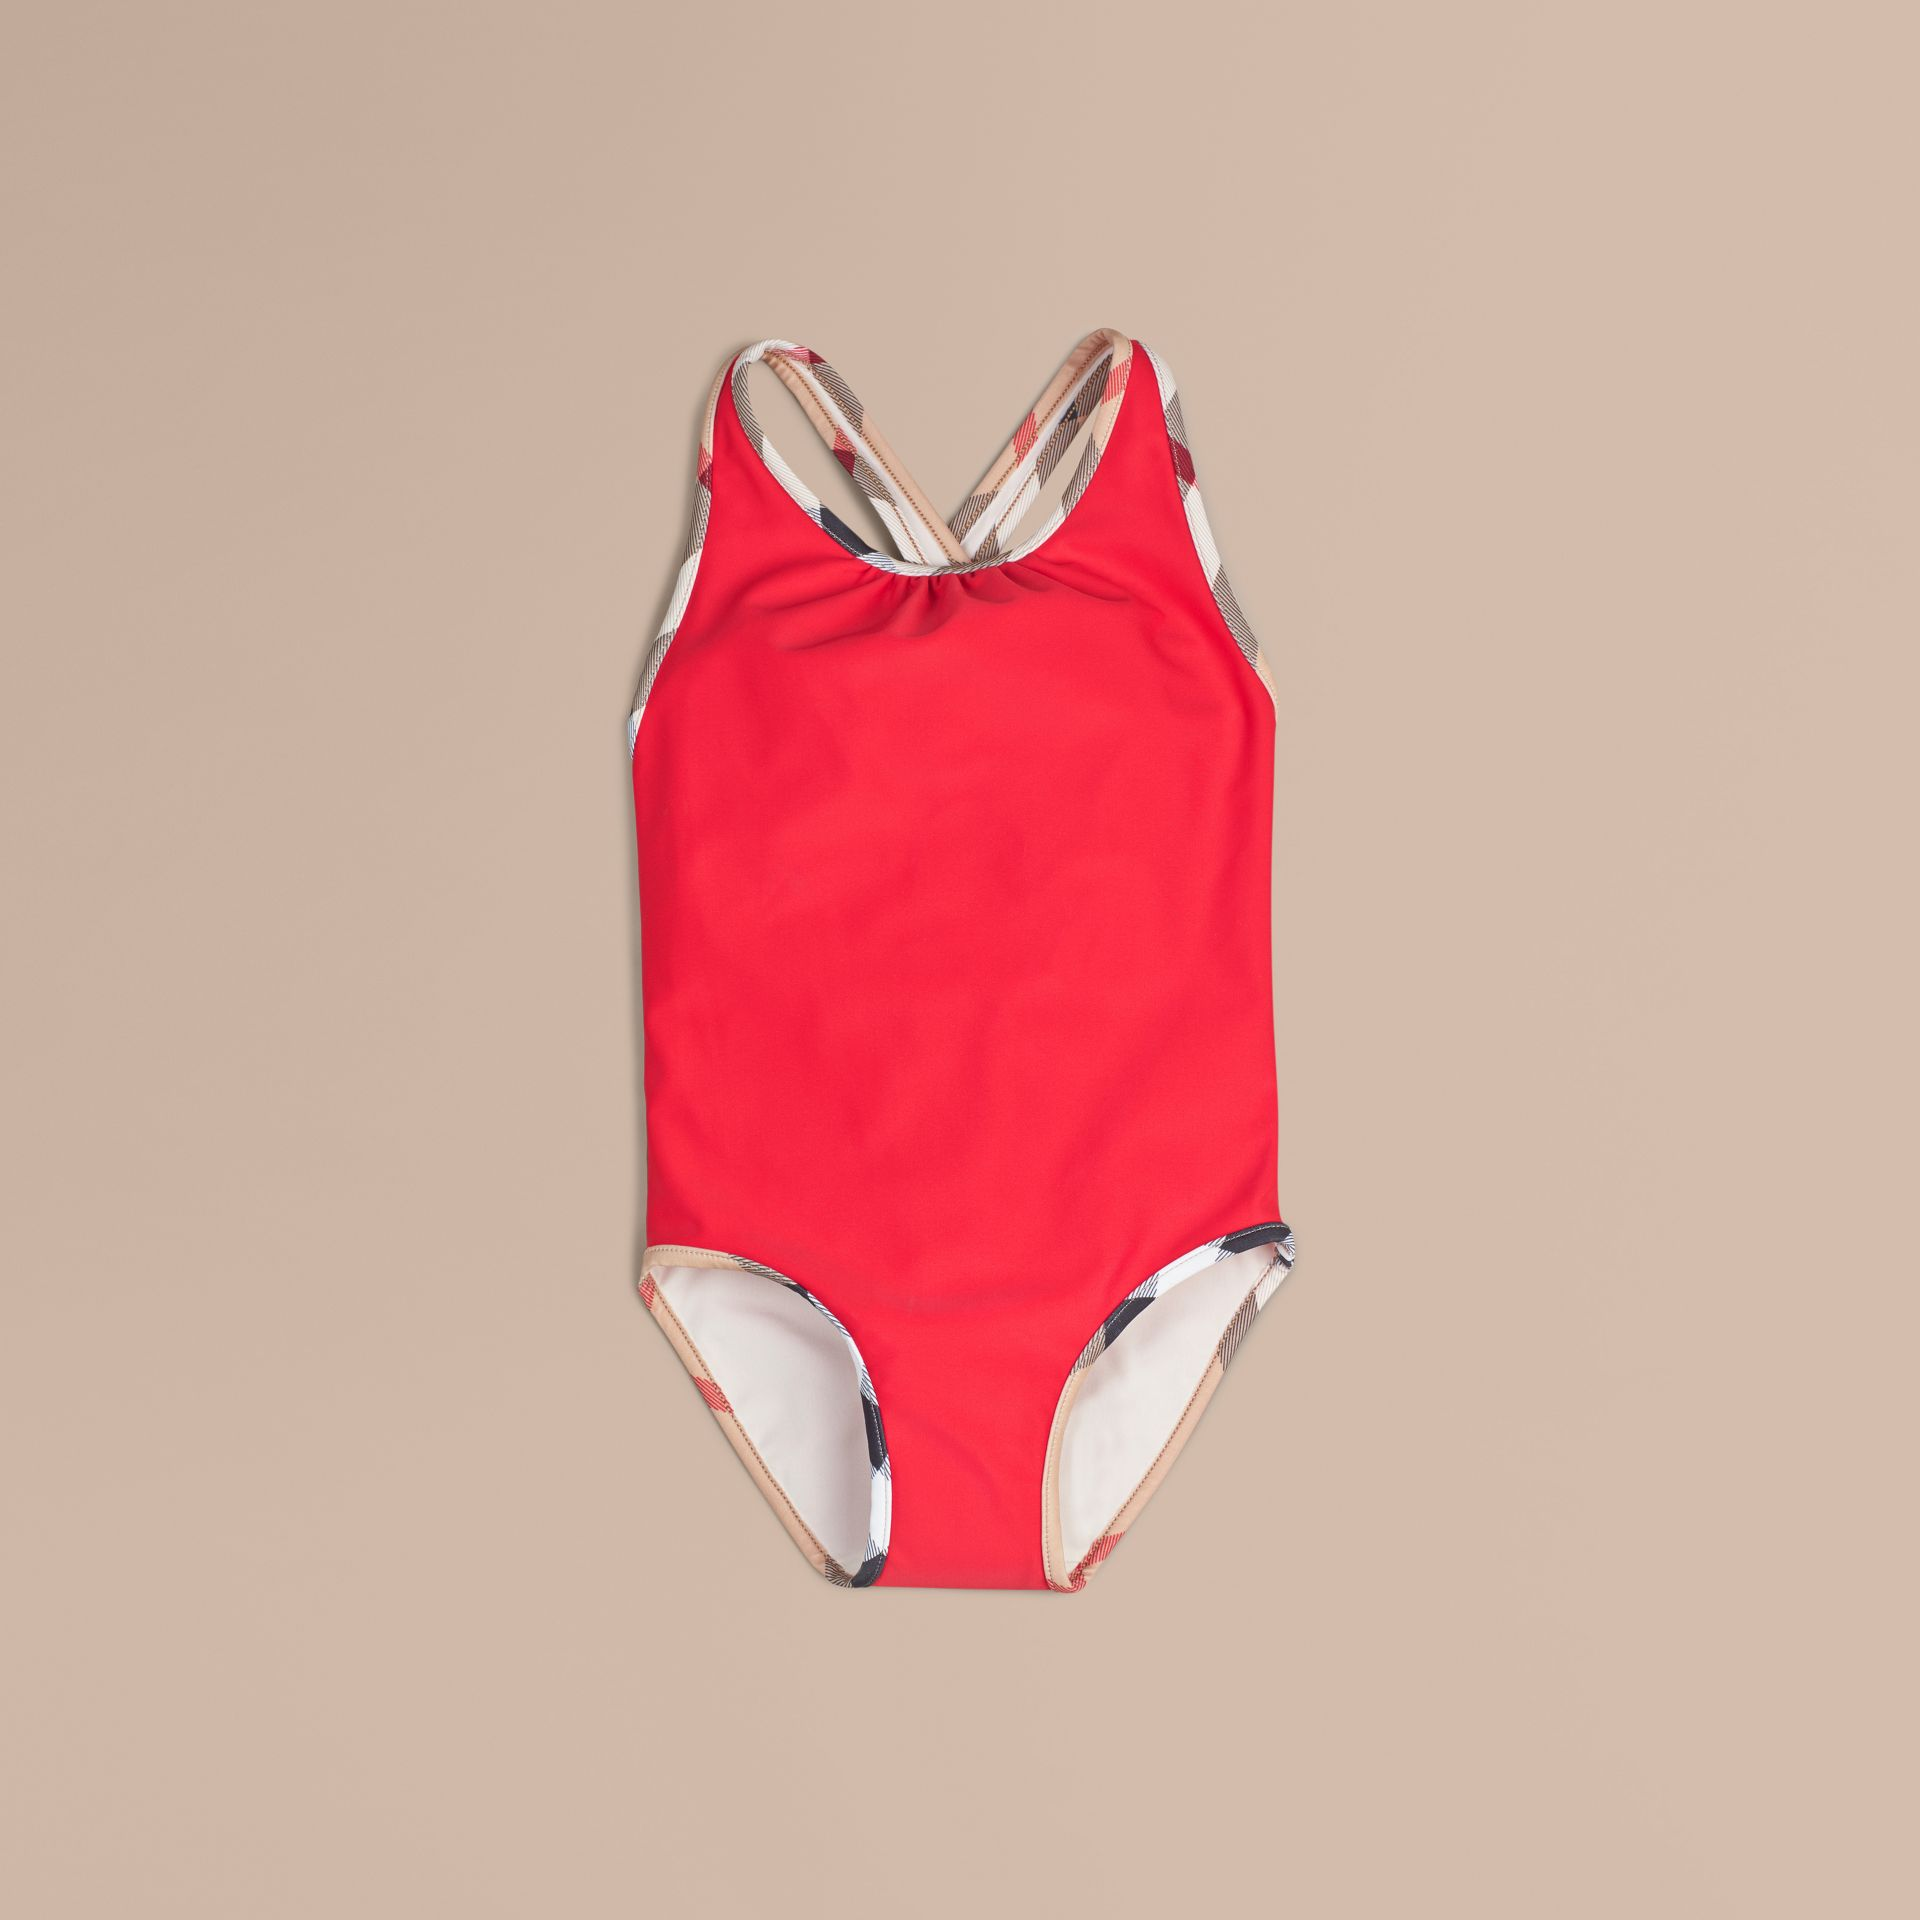 Poppy red Check Detail One-piece Swimsuit Poppy Red - gallery image 1